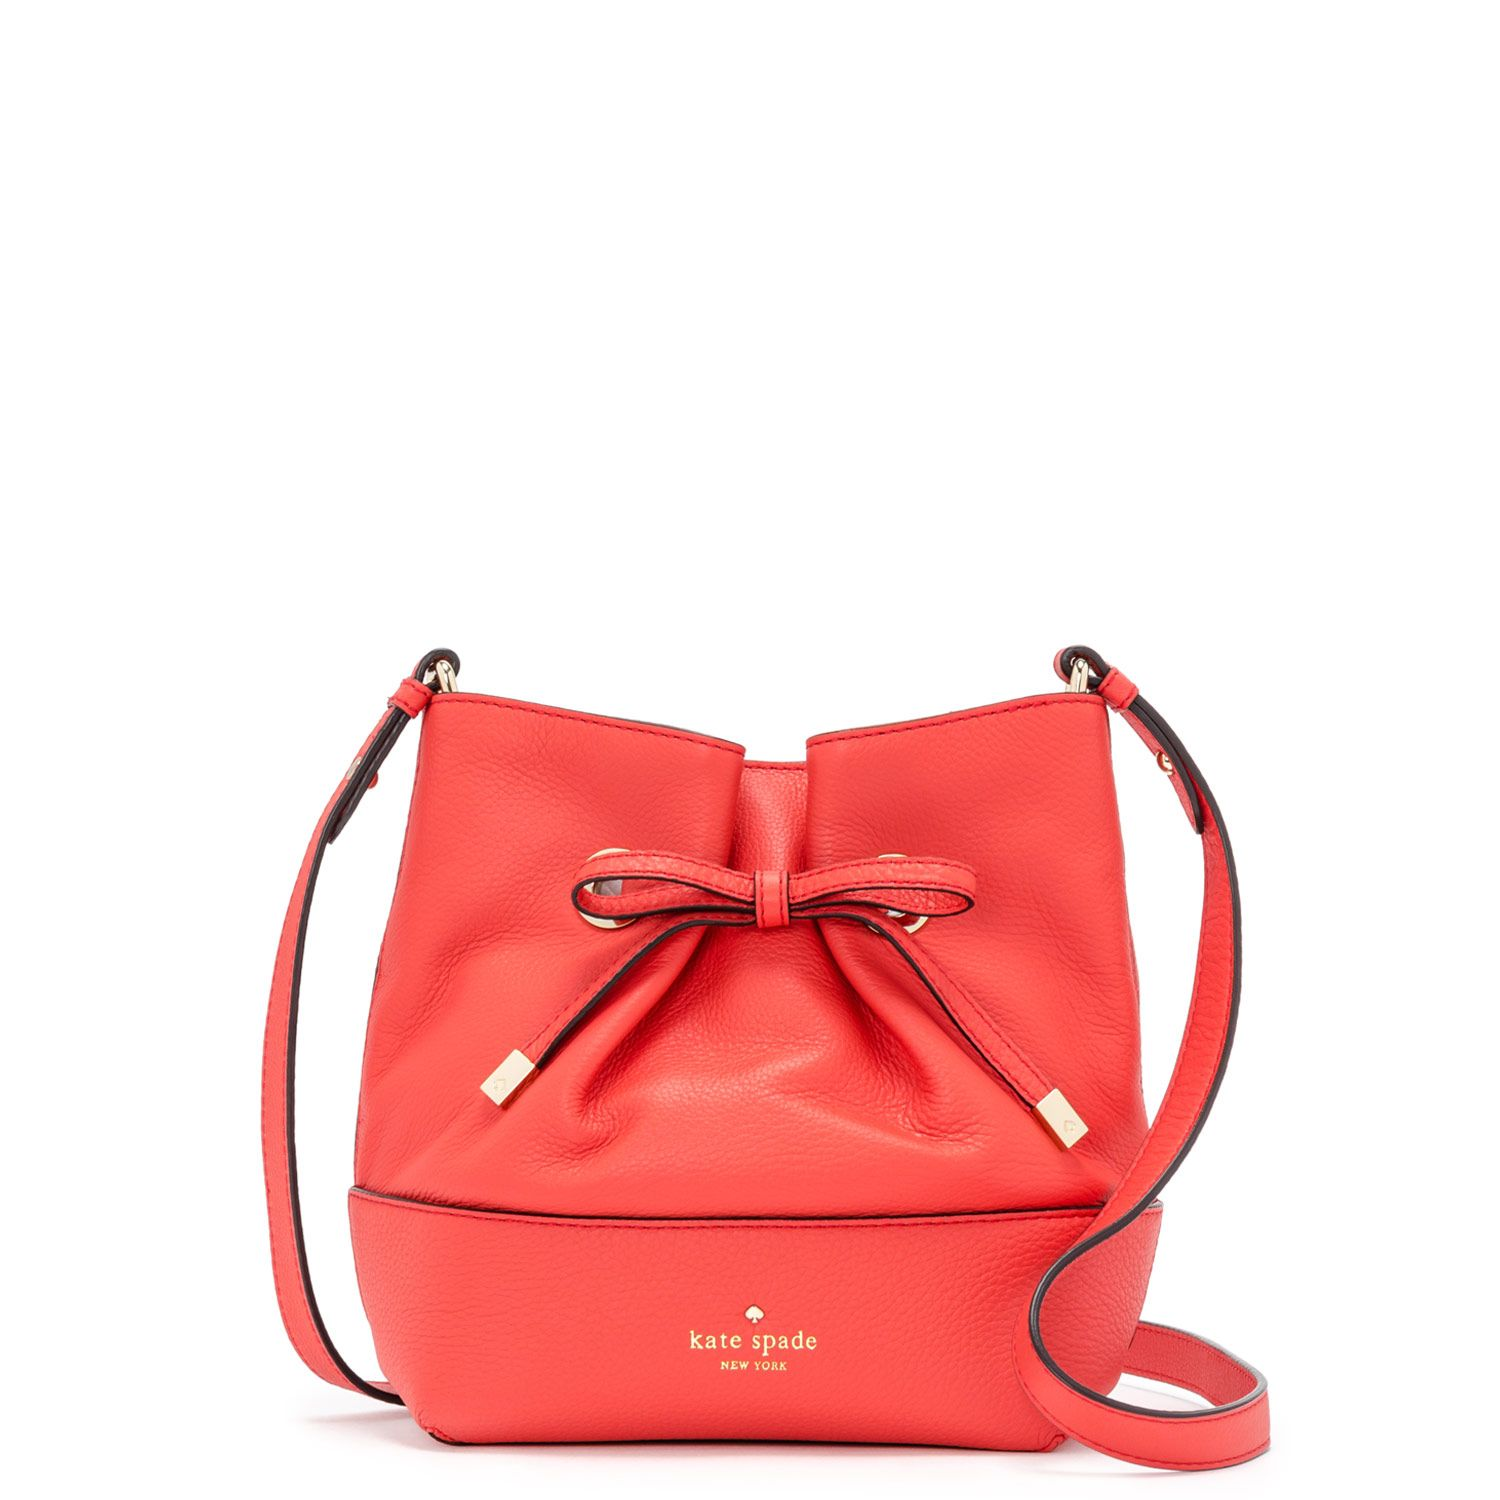 kate spade west valley small valentine (With images